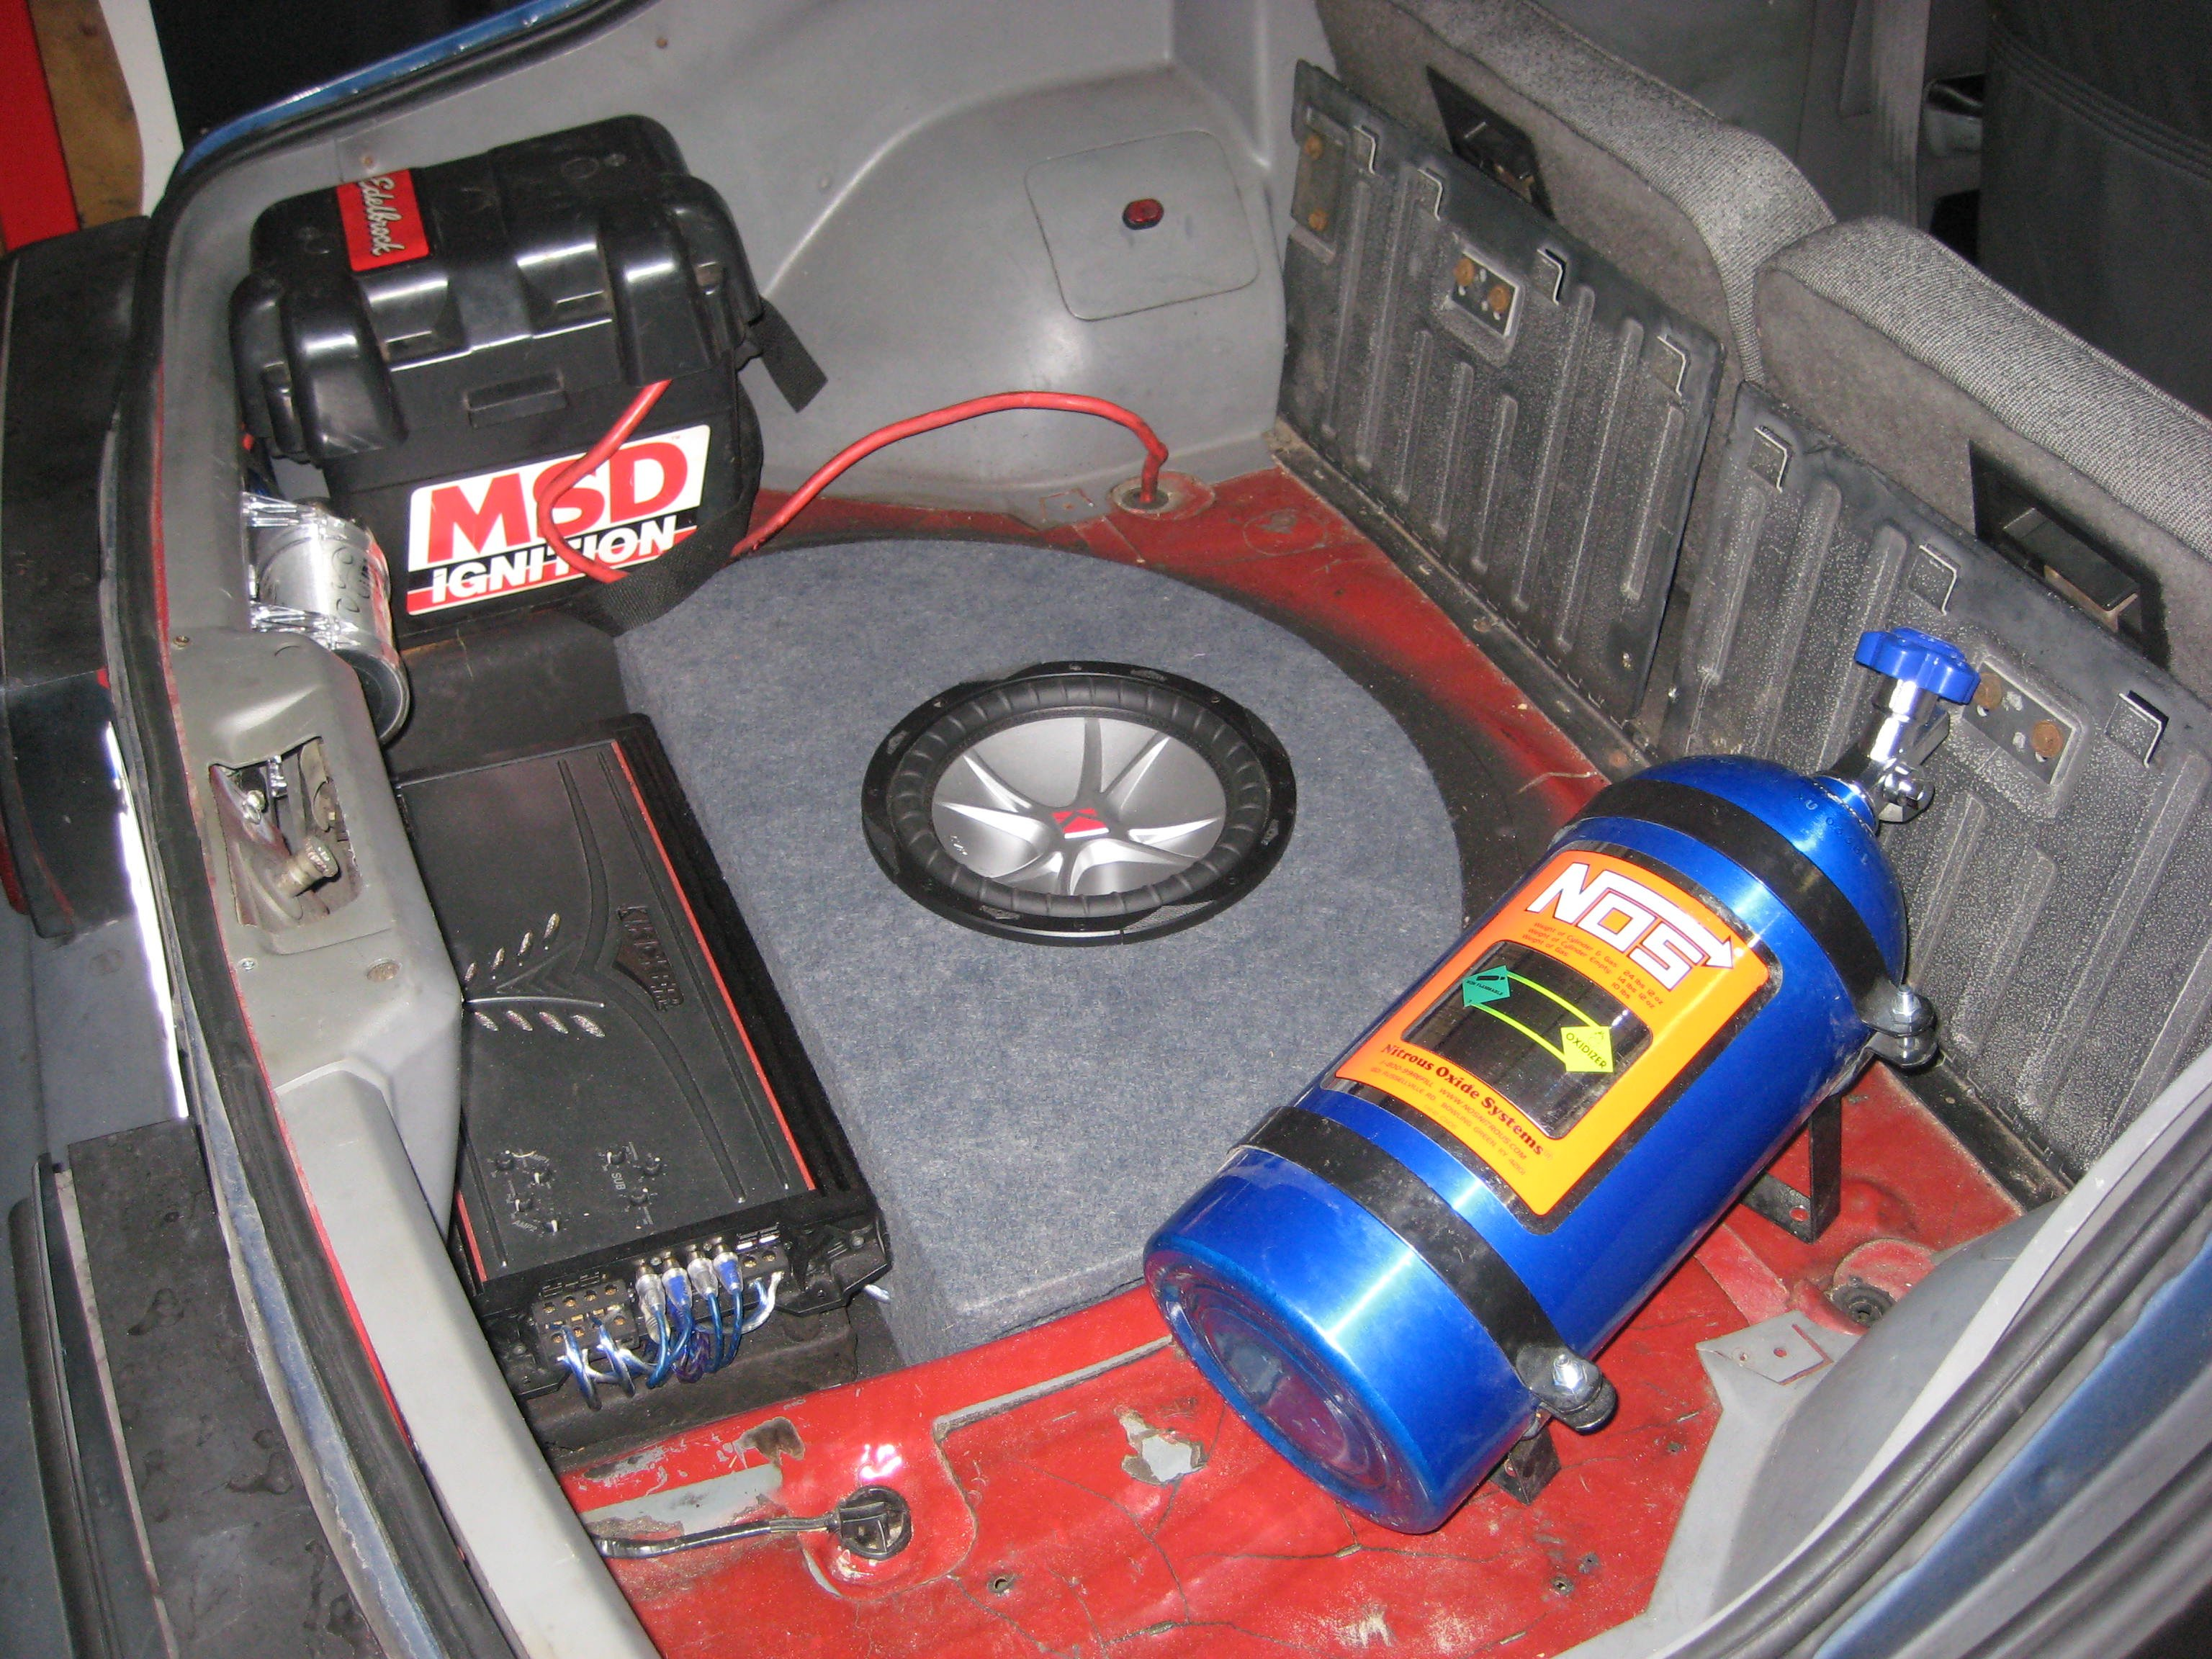 Pics of your amp mounted in foxbody - Ford Mustang Forum